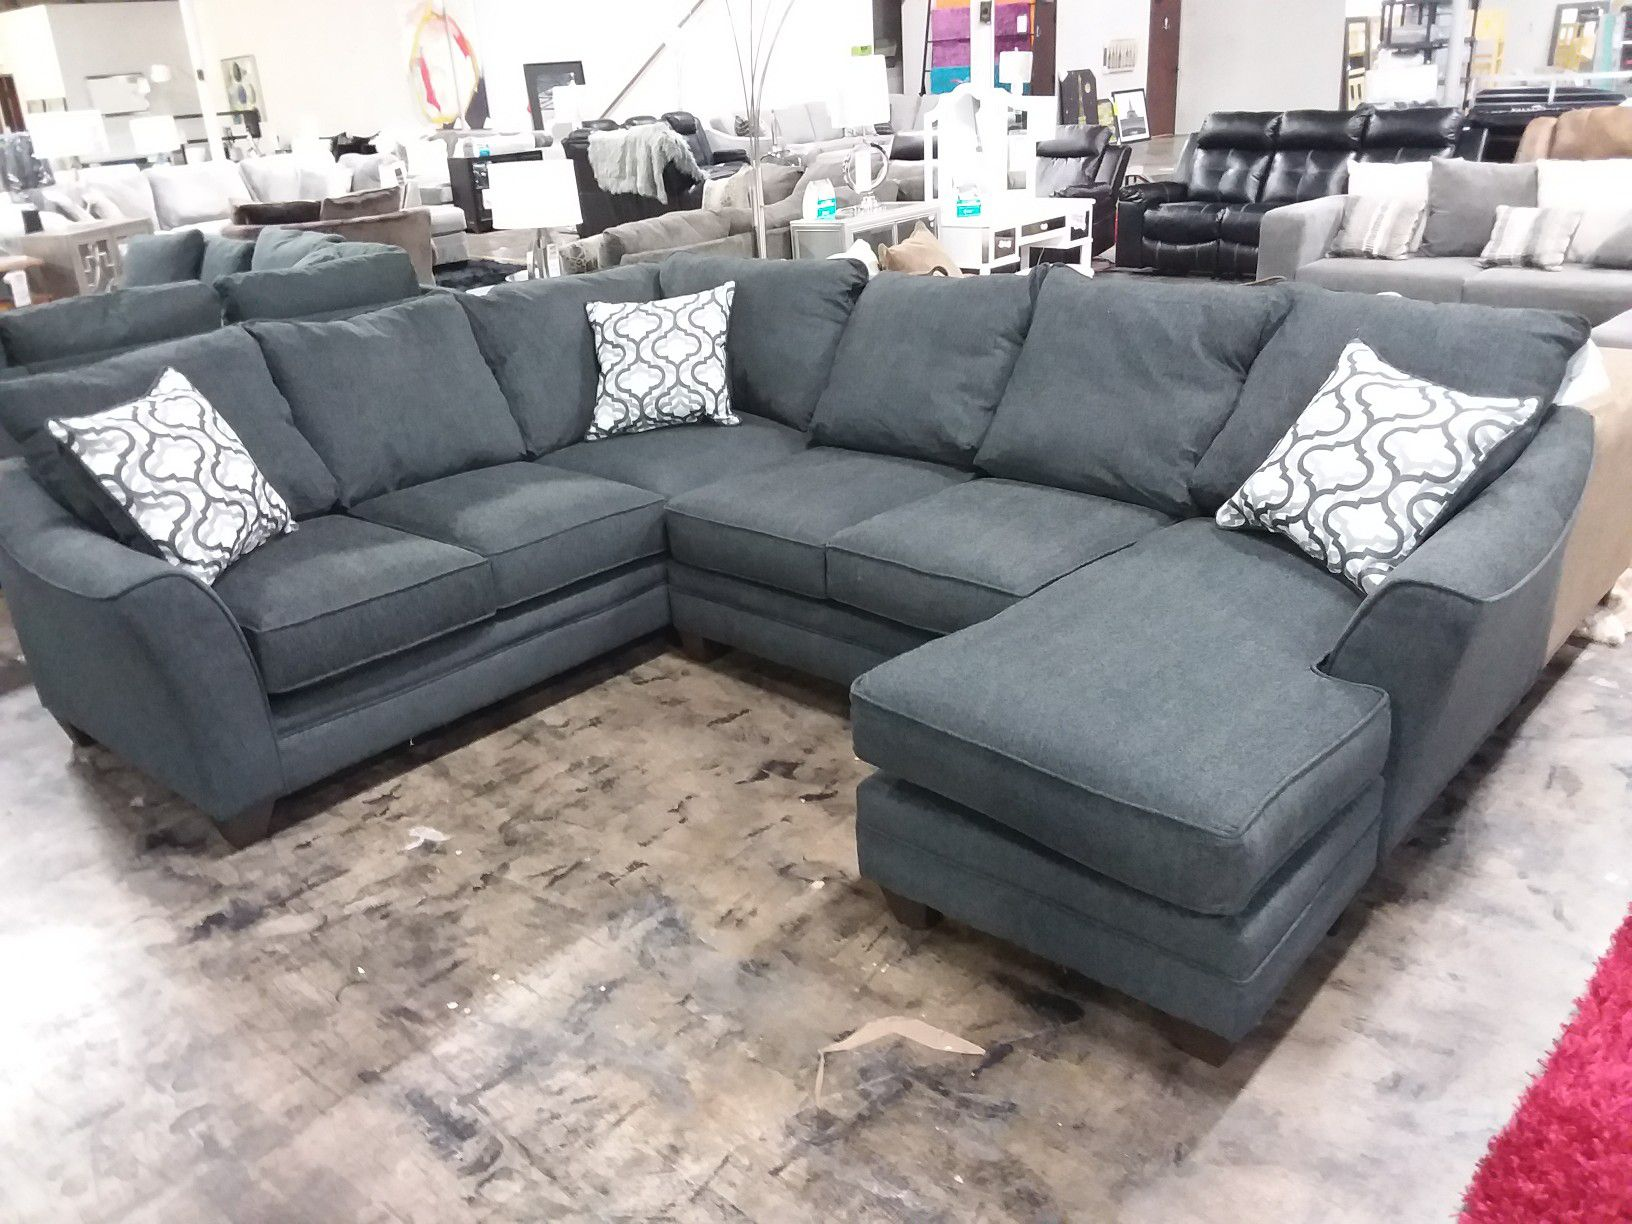 SLATE XL SECTIONAL SOFA WITH ACCENT PILLOWS